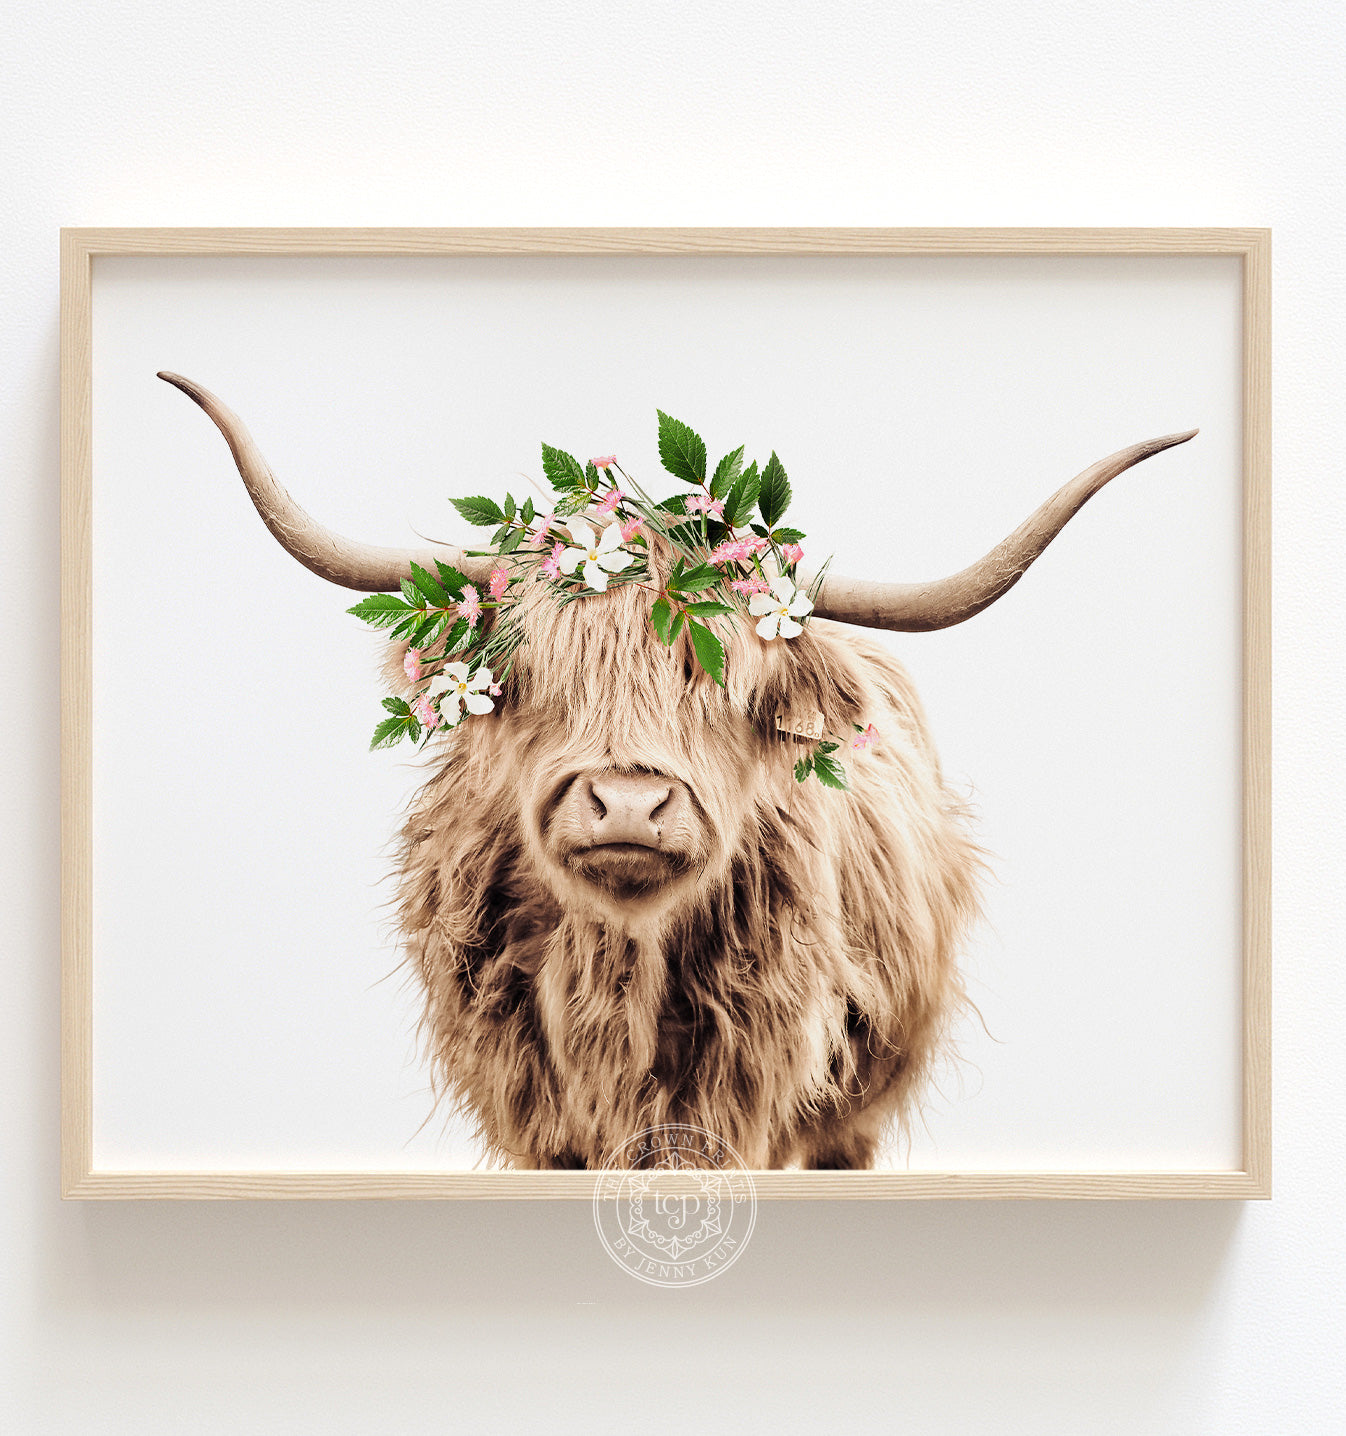 Highland Cow with Flower Crown and White Background Printable Art